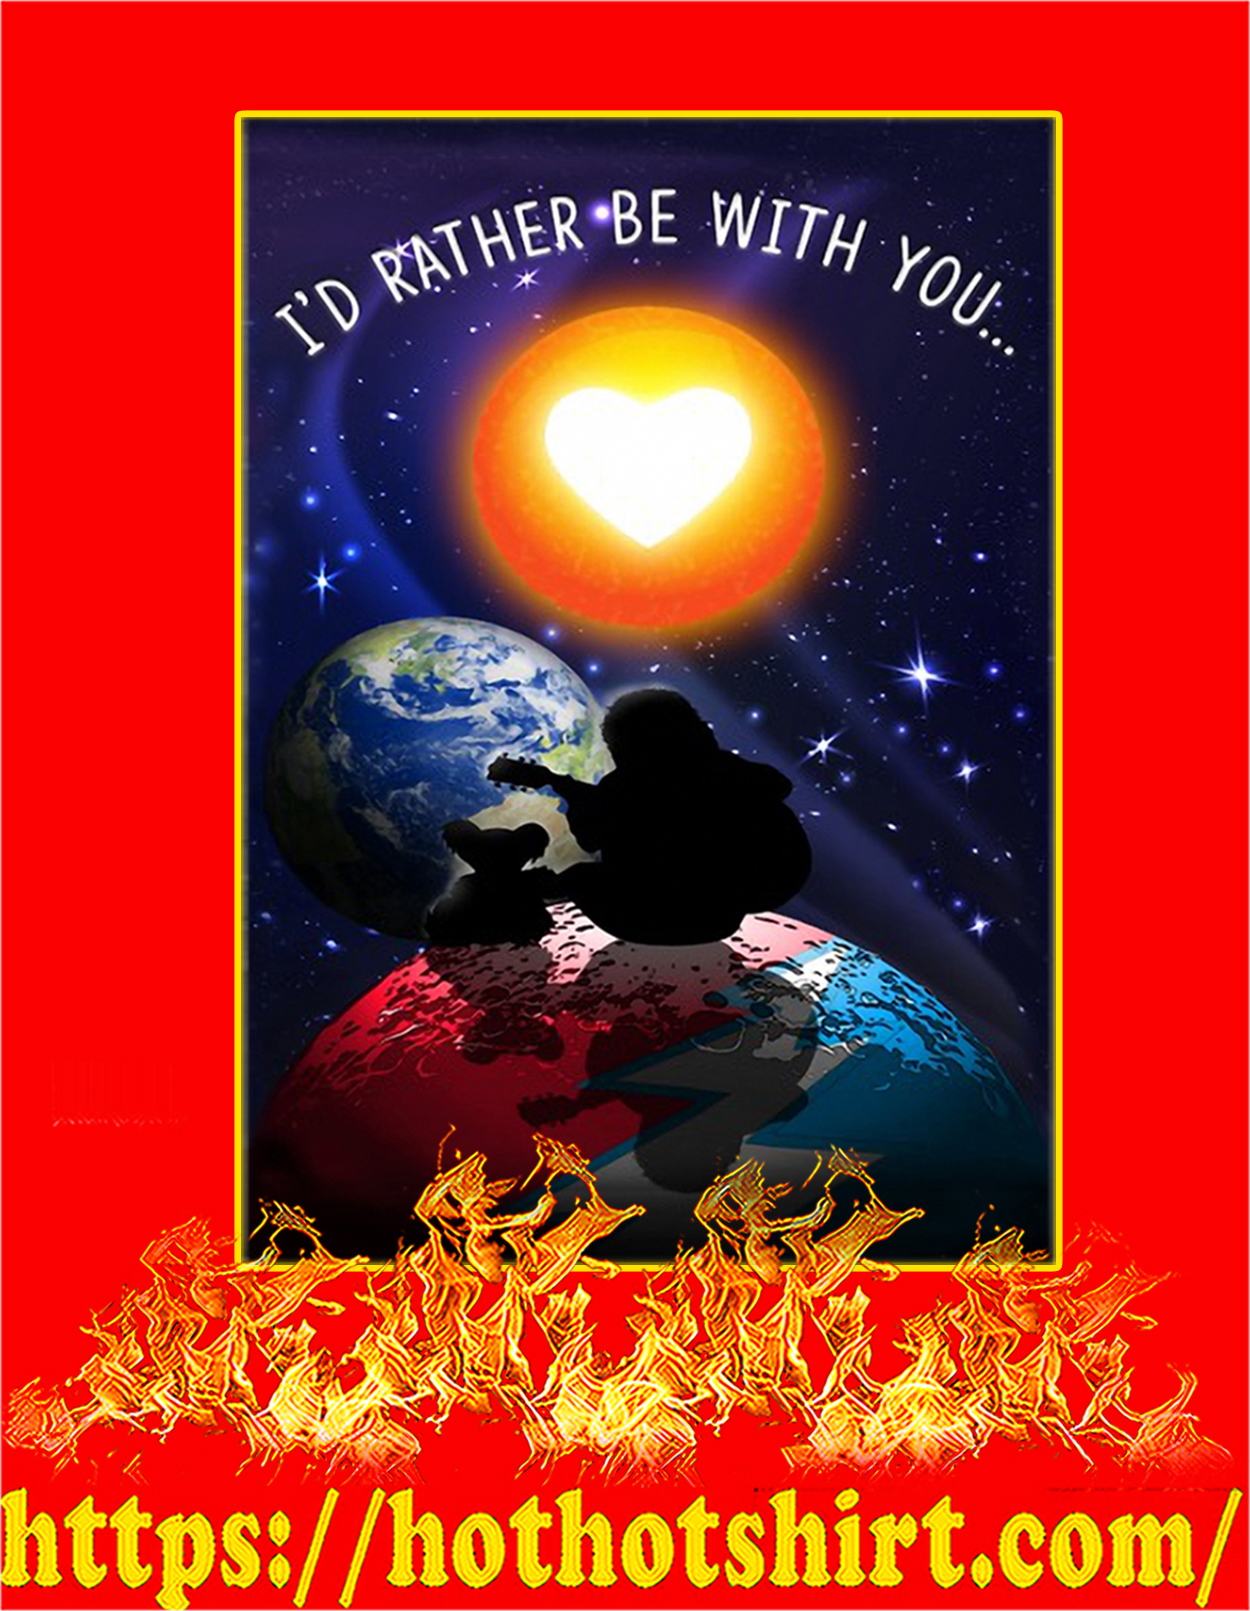 I'd rather be with you steven universe poster - A3